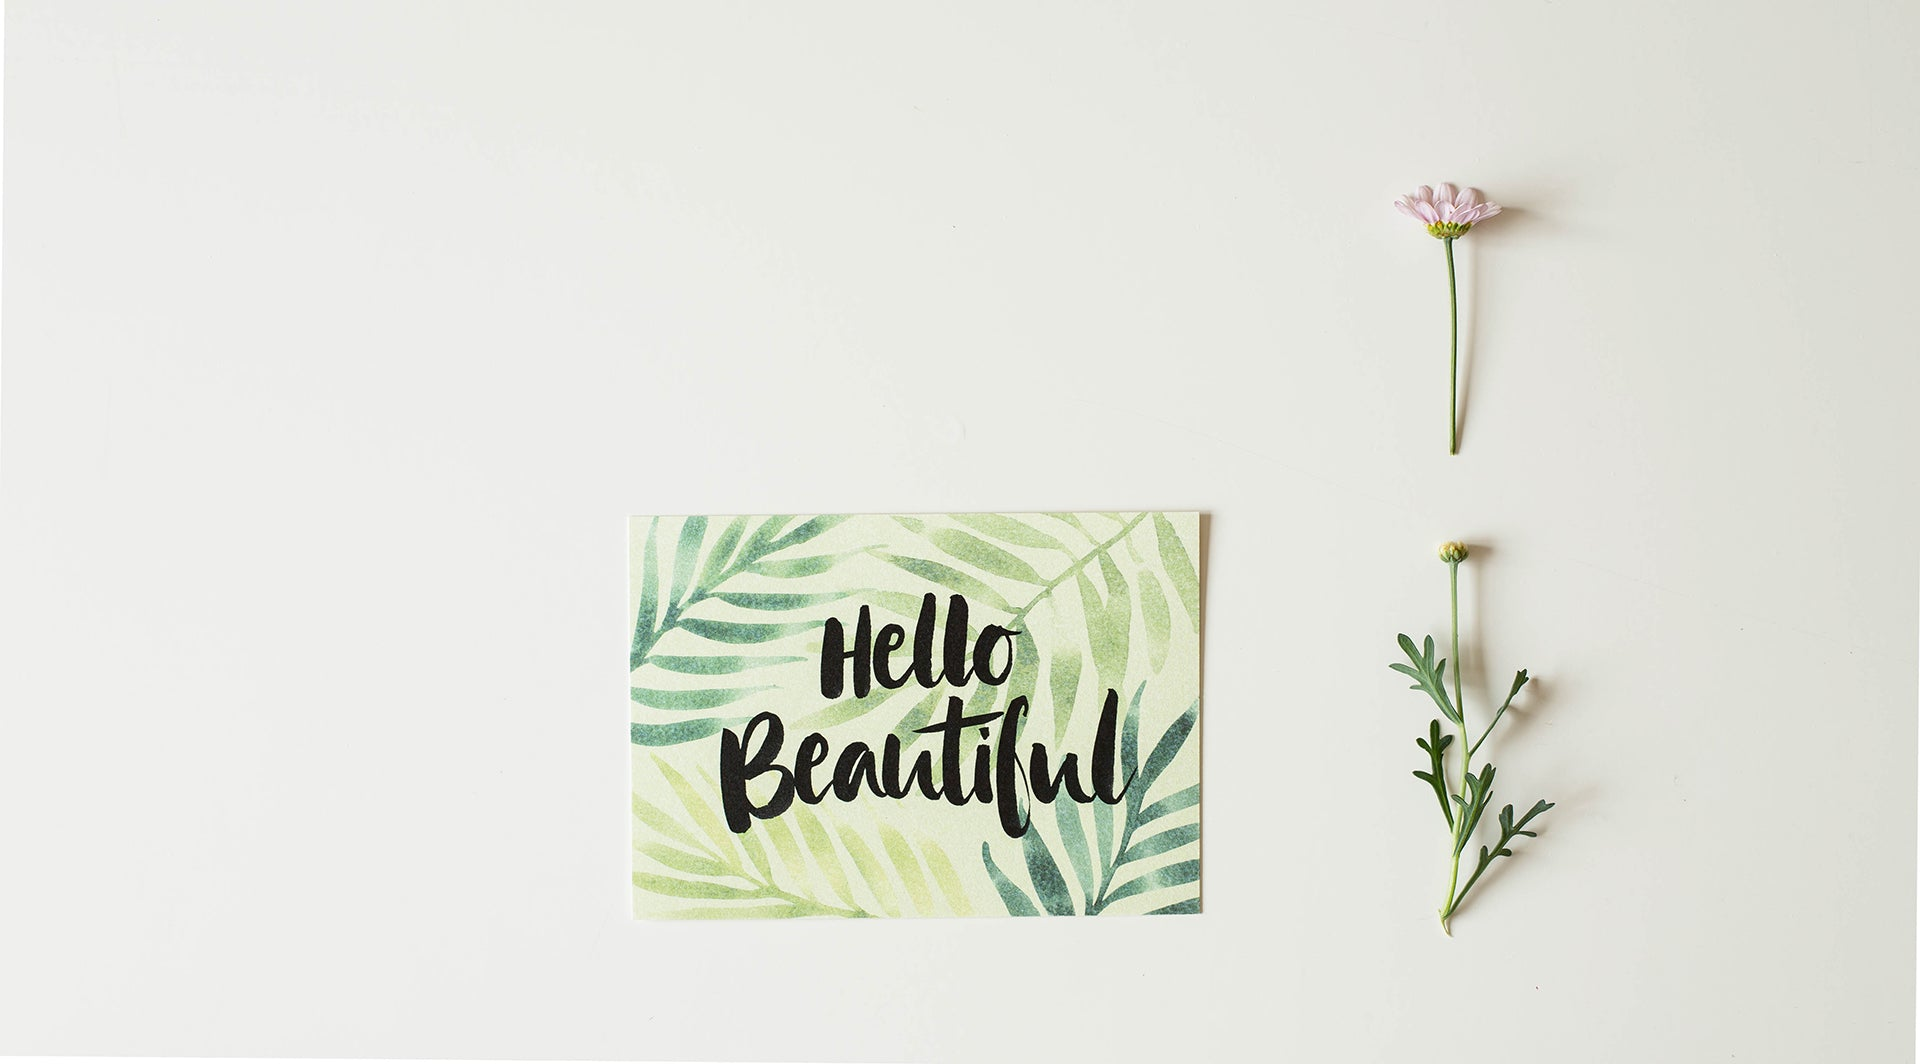 'Hello Beautiful' Postkarte - Lily Design